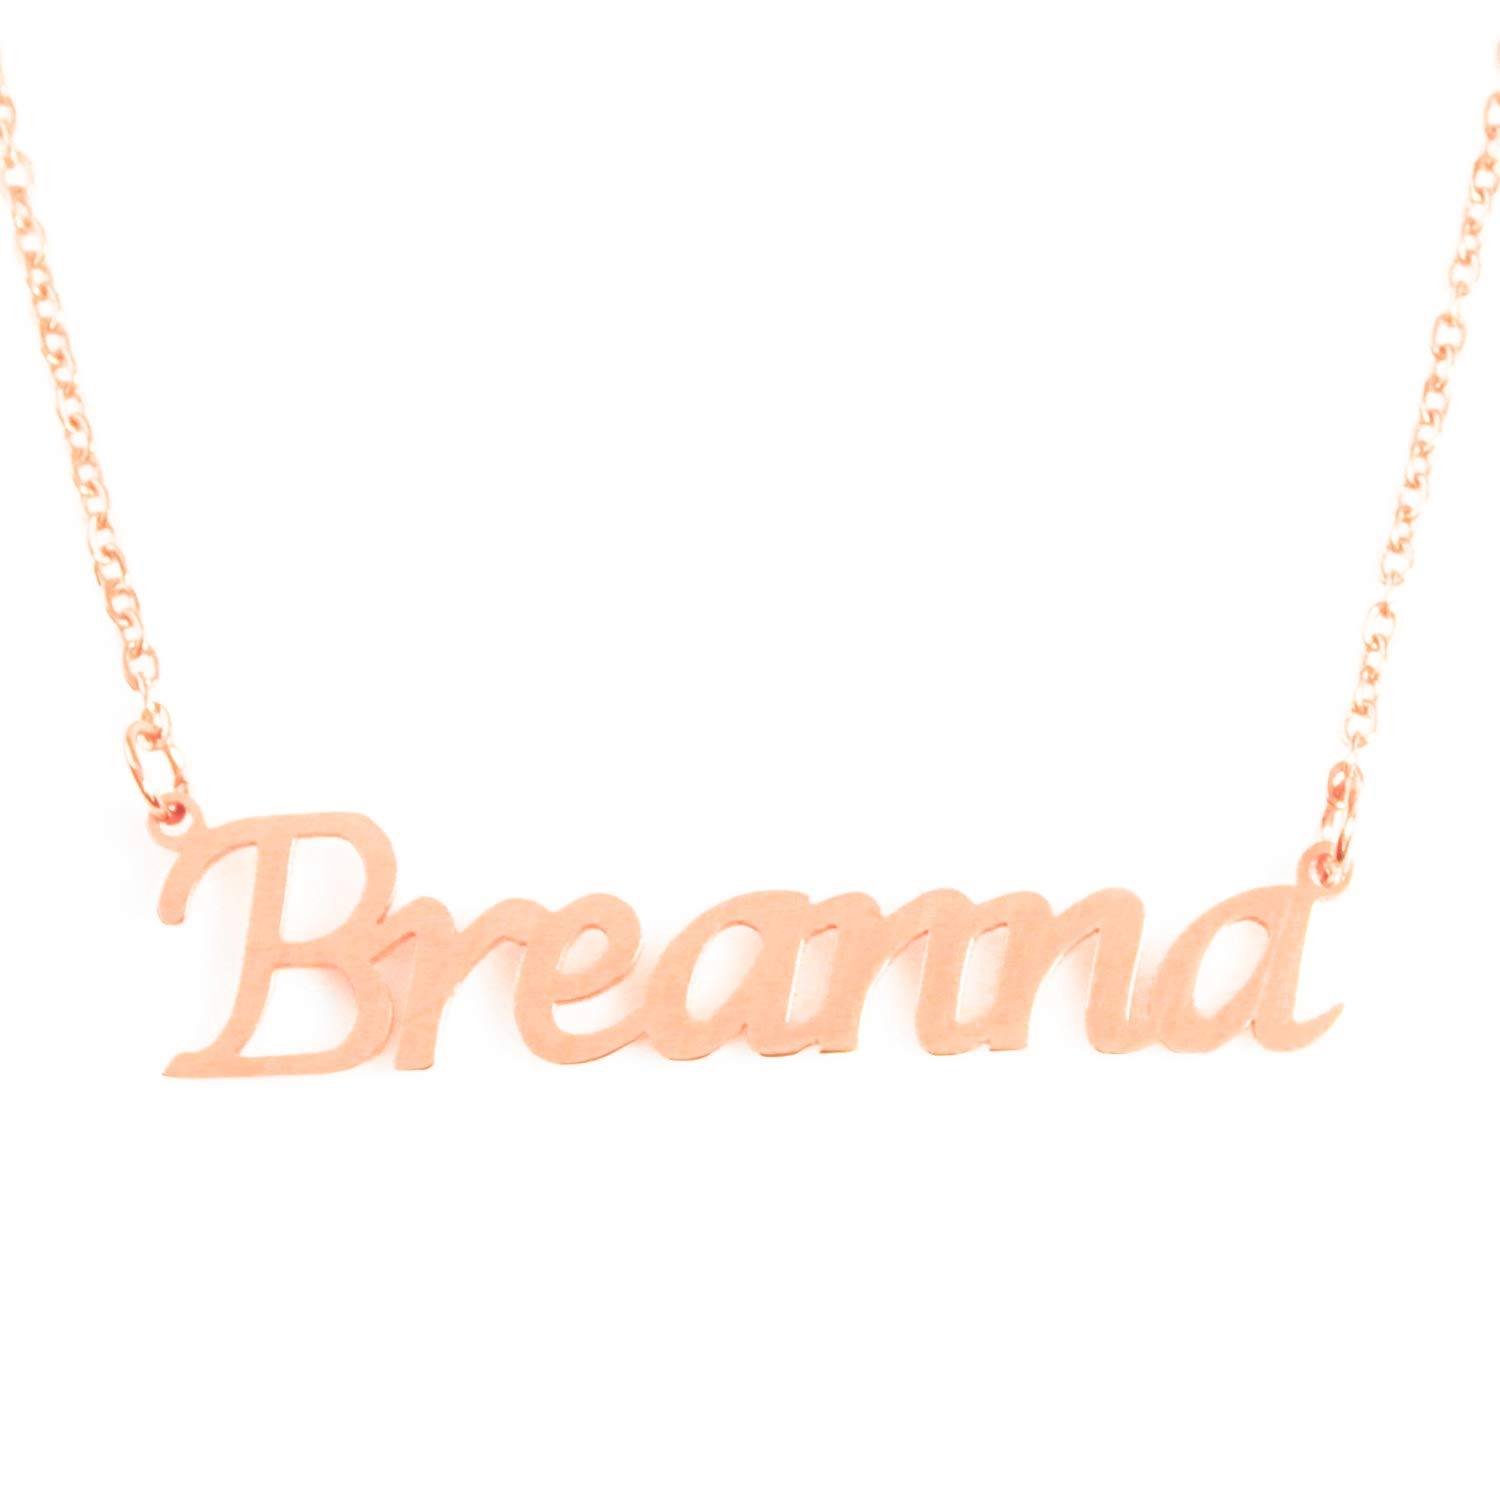 18ct Rose Gold Plated Zacria Breanna Custom Name Necklace Personalized